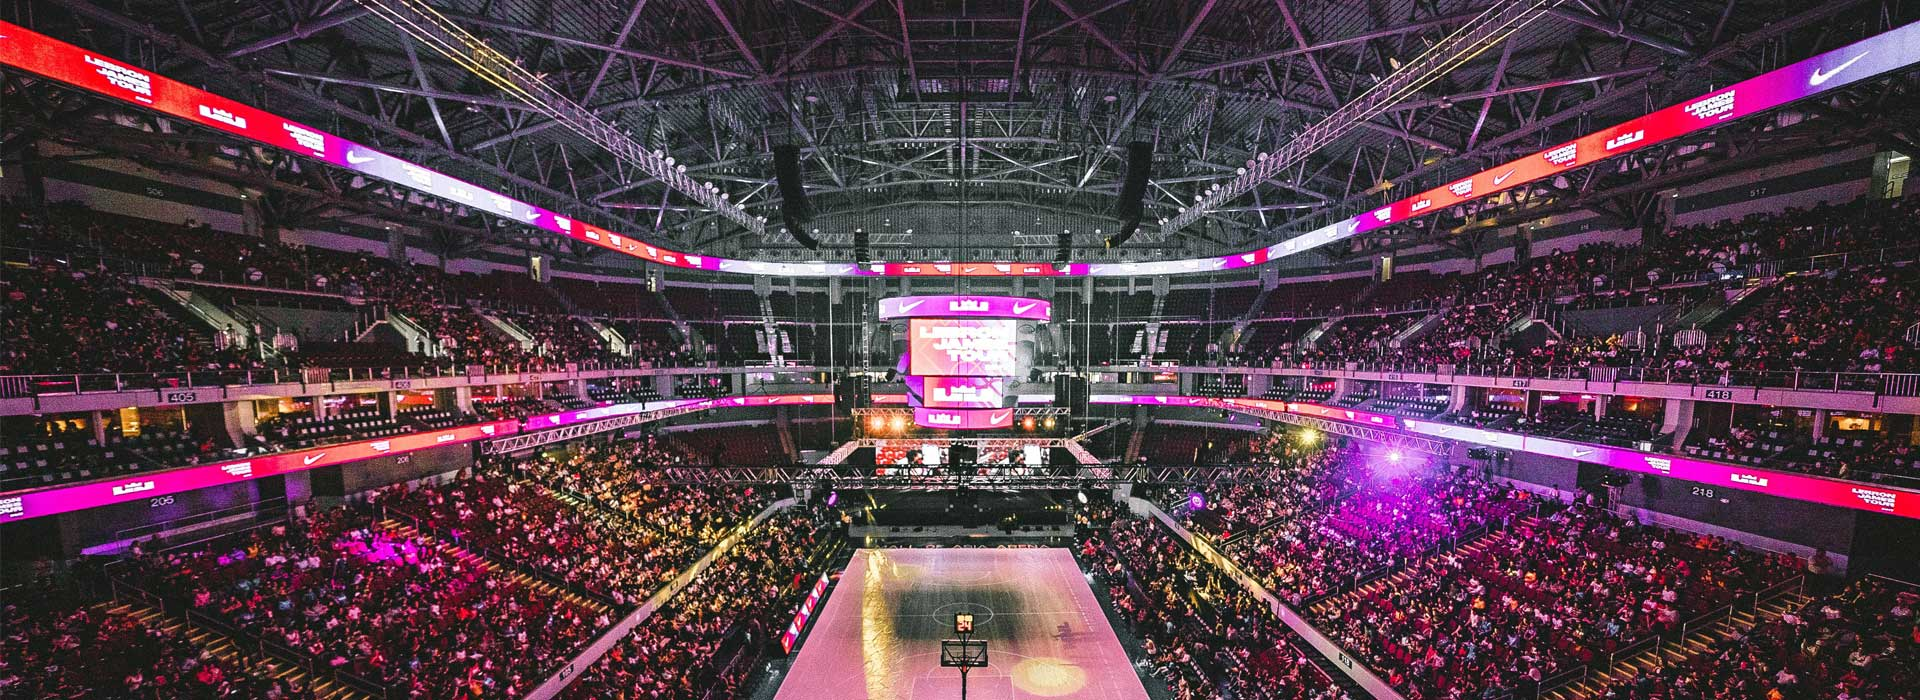 EMERGENCE OF ESPORTS AND THE AMENITY OF THE FUTURE